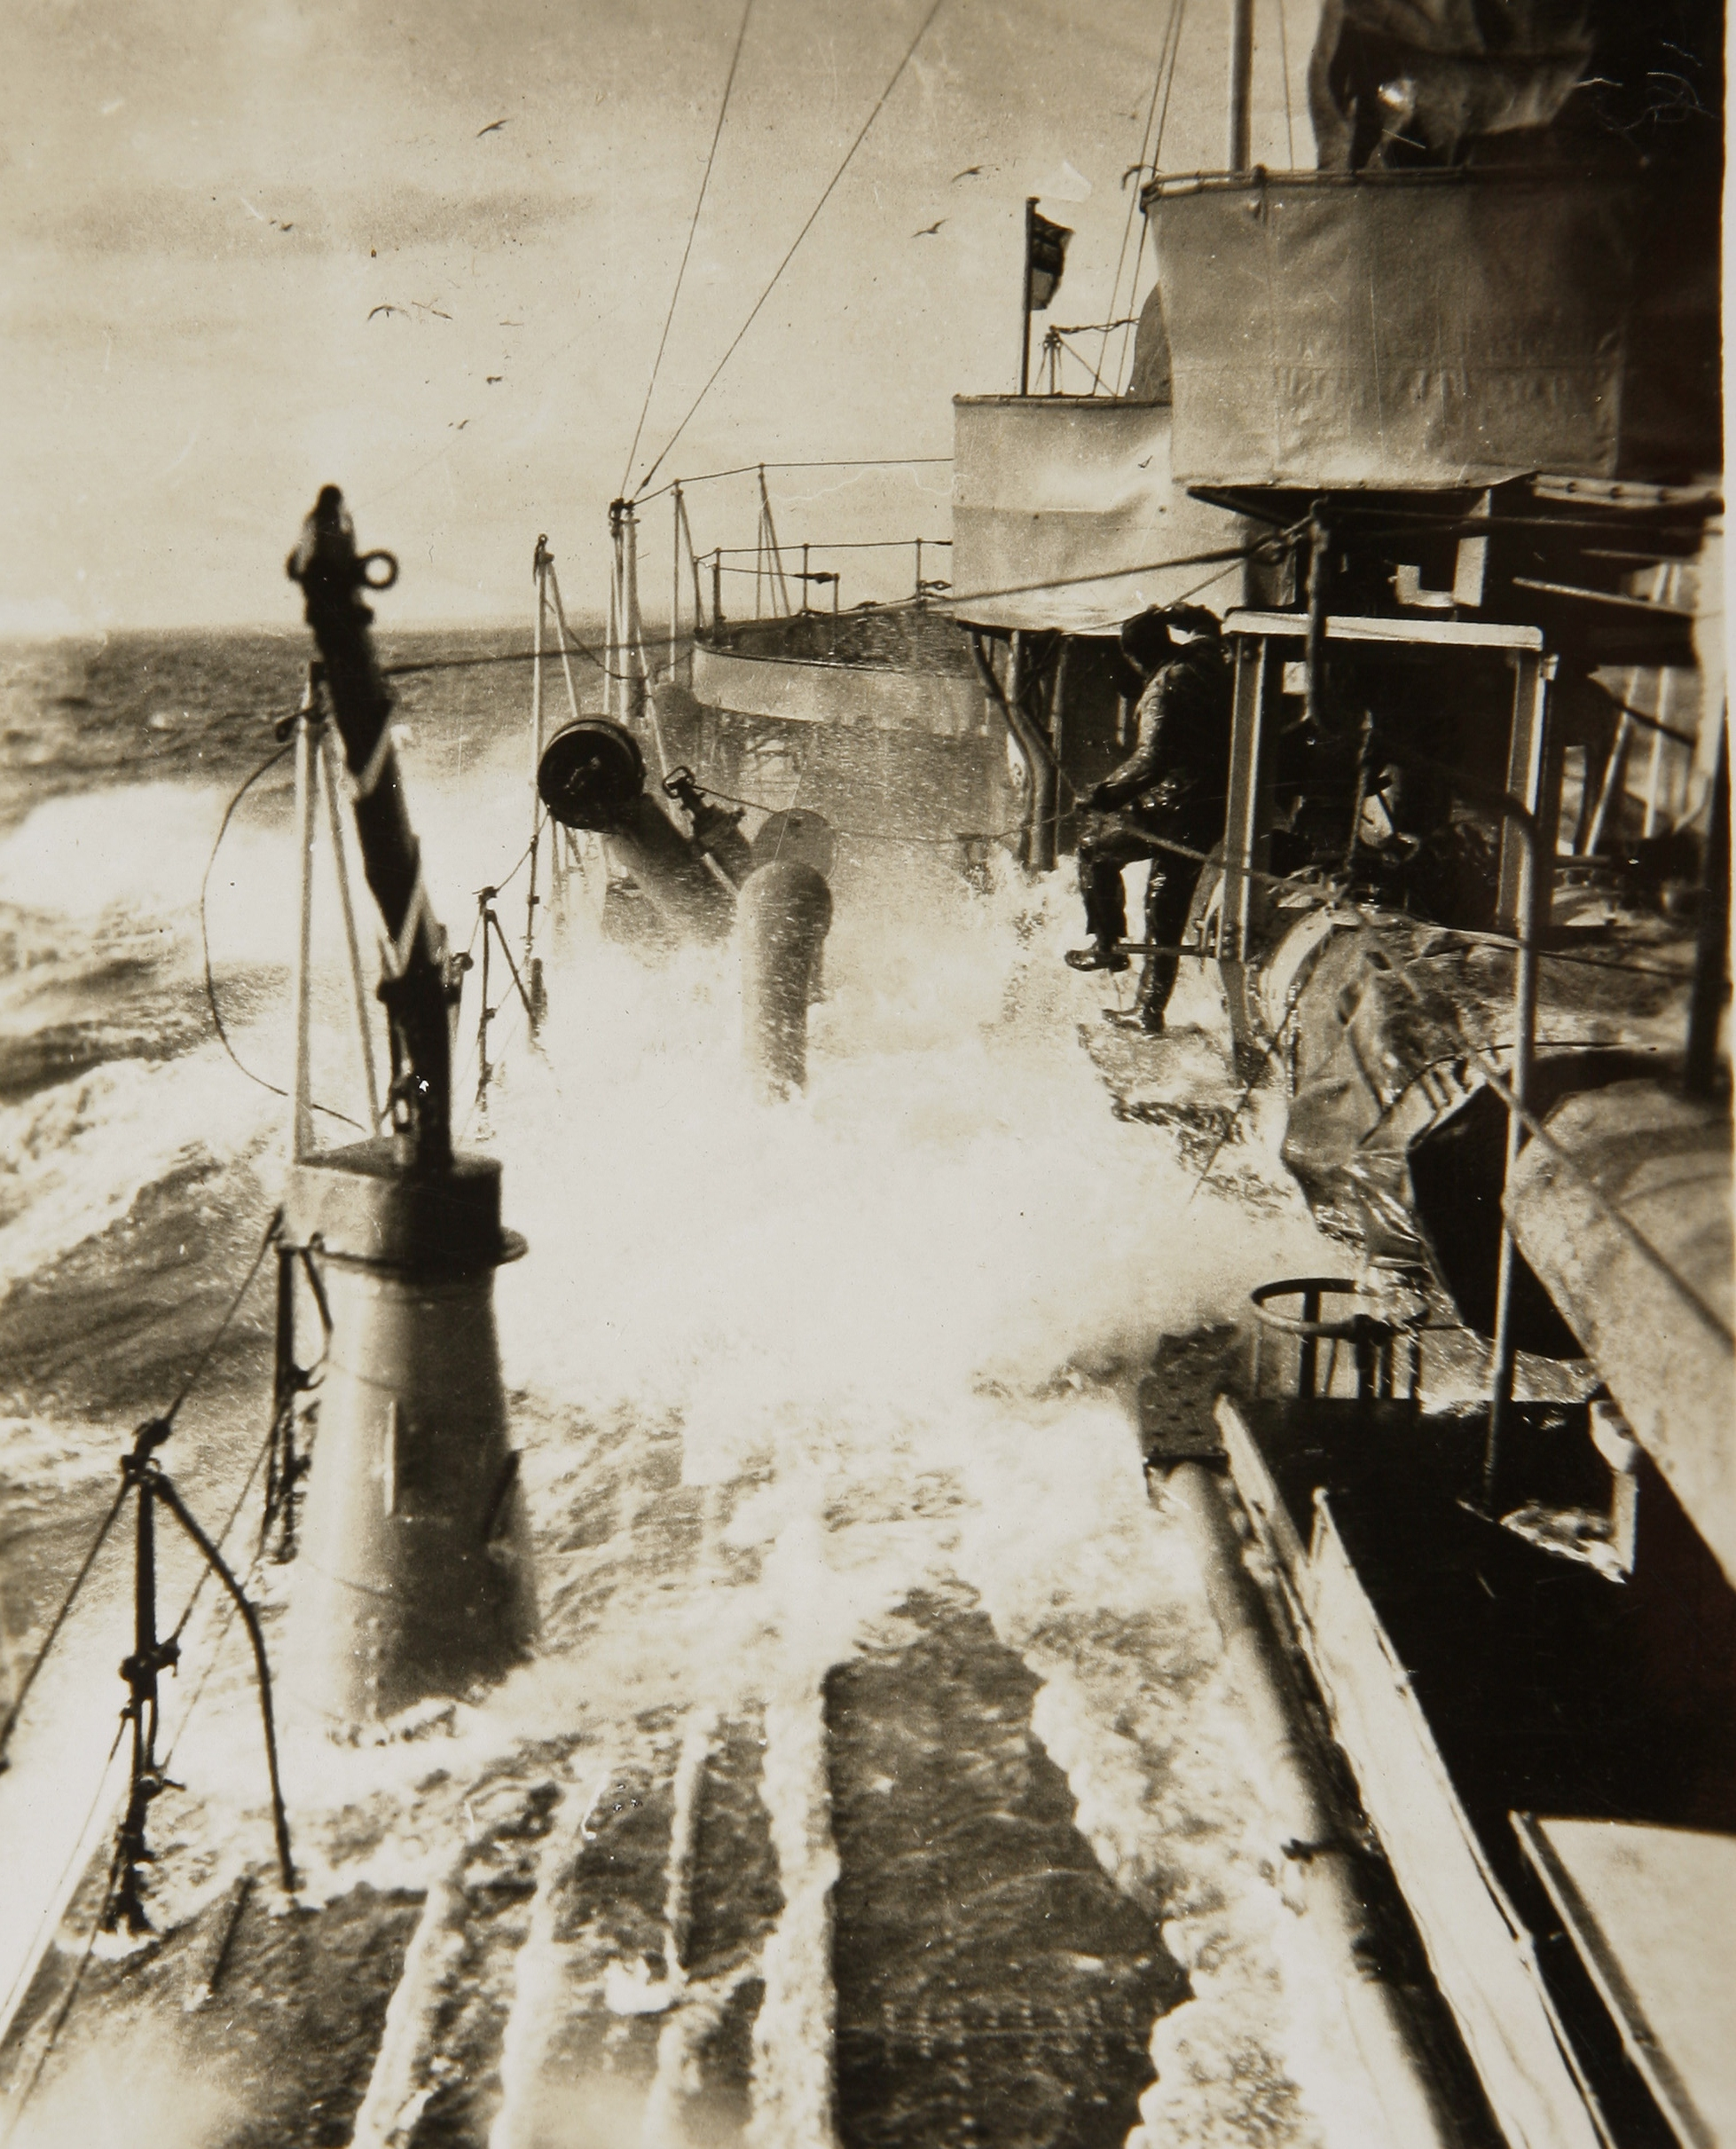 HMAS Sydney ploughing through a rough sea